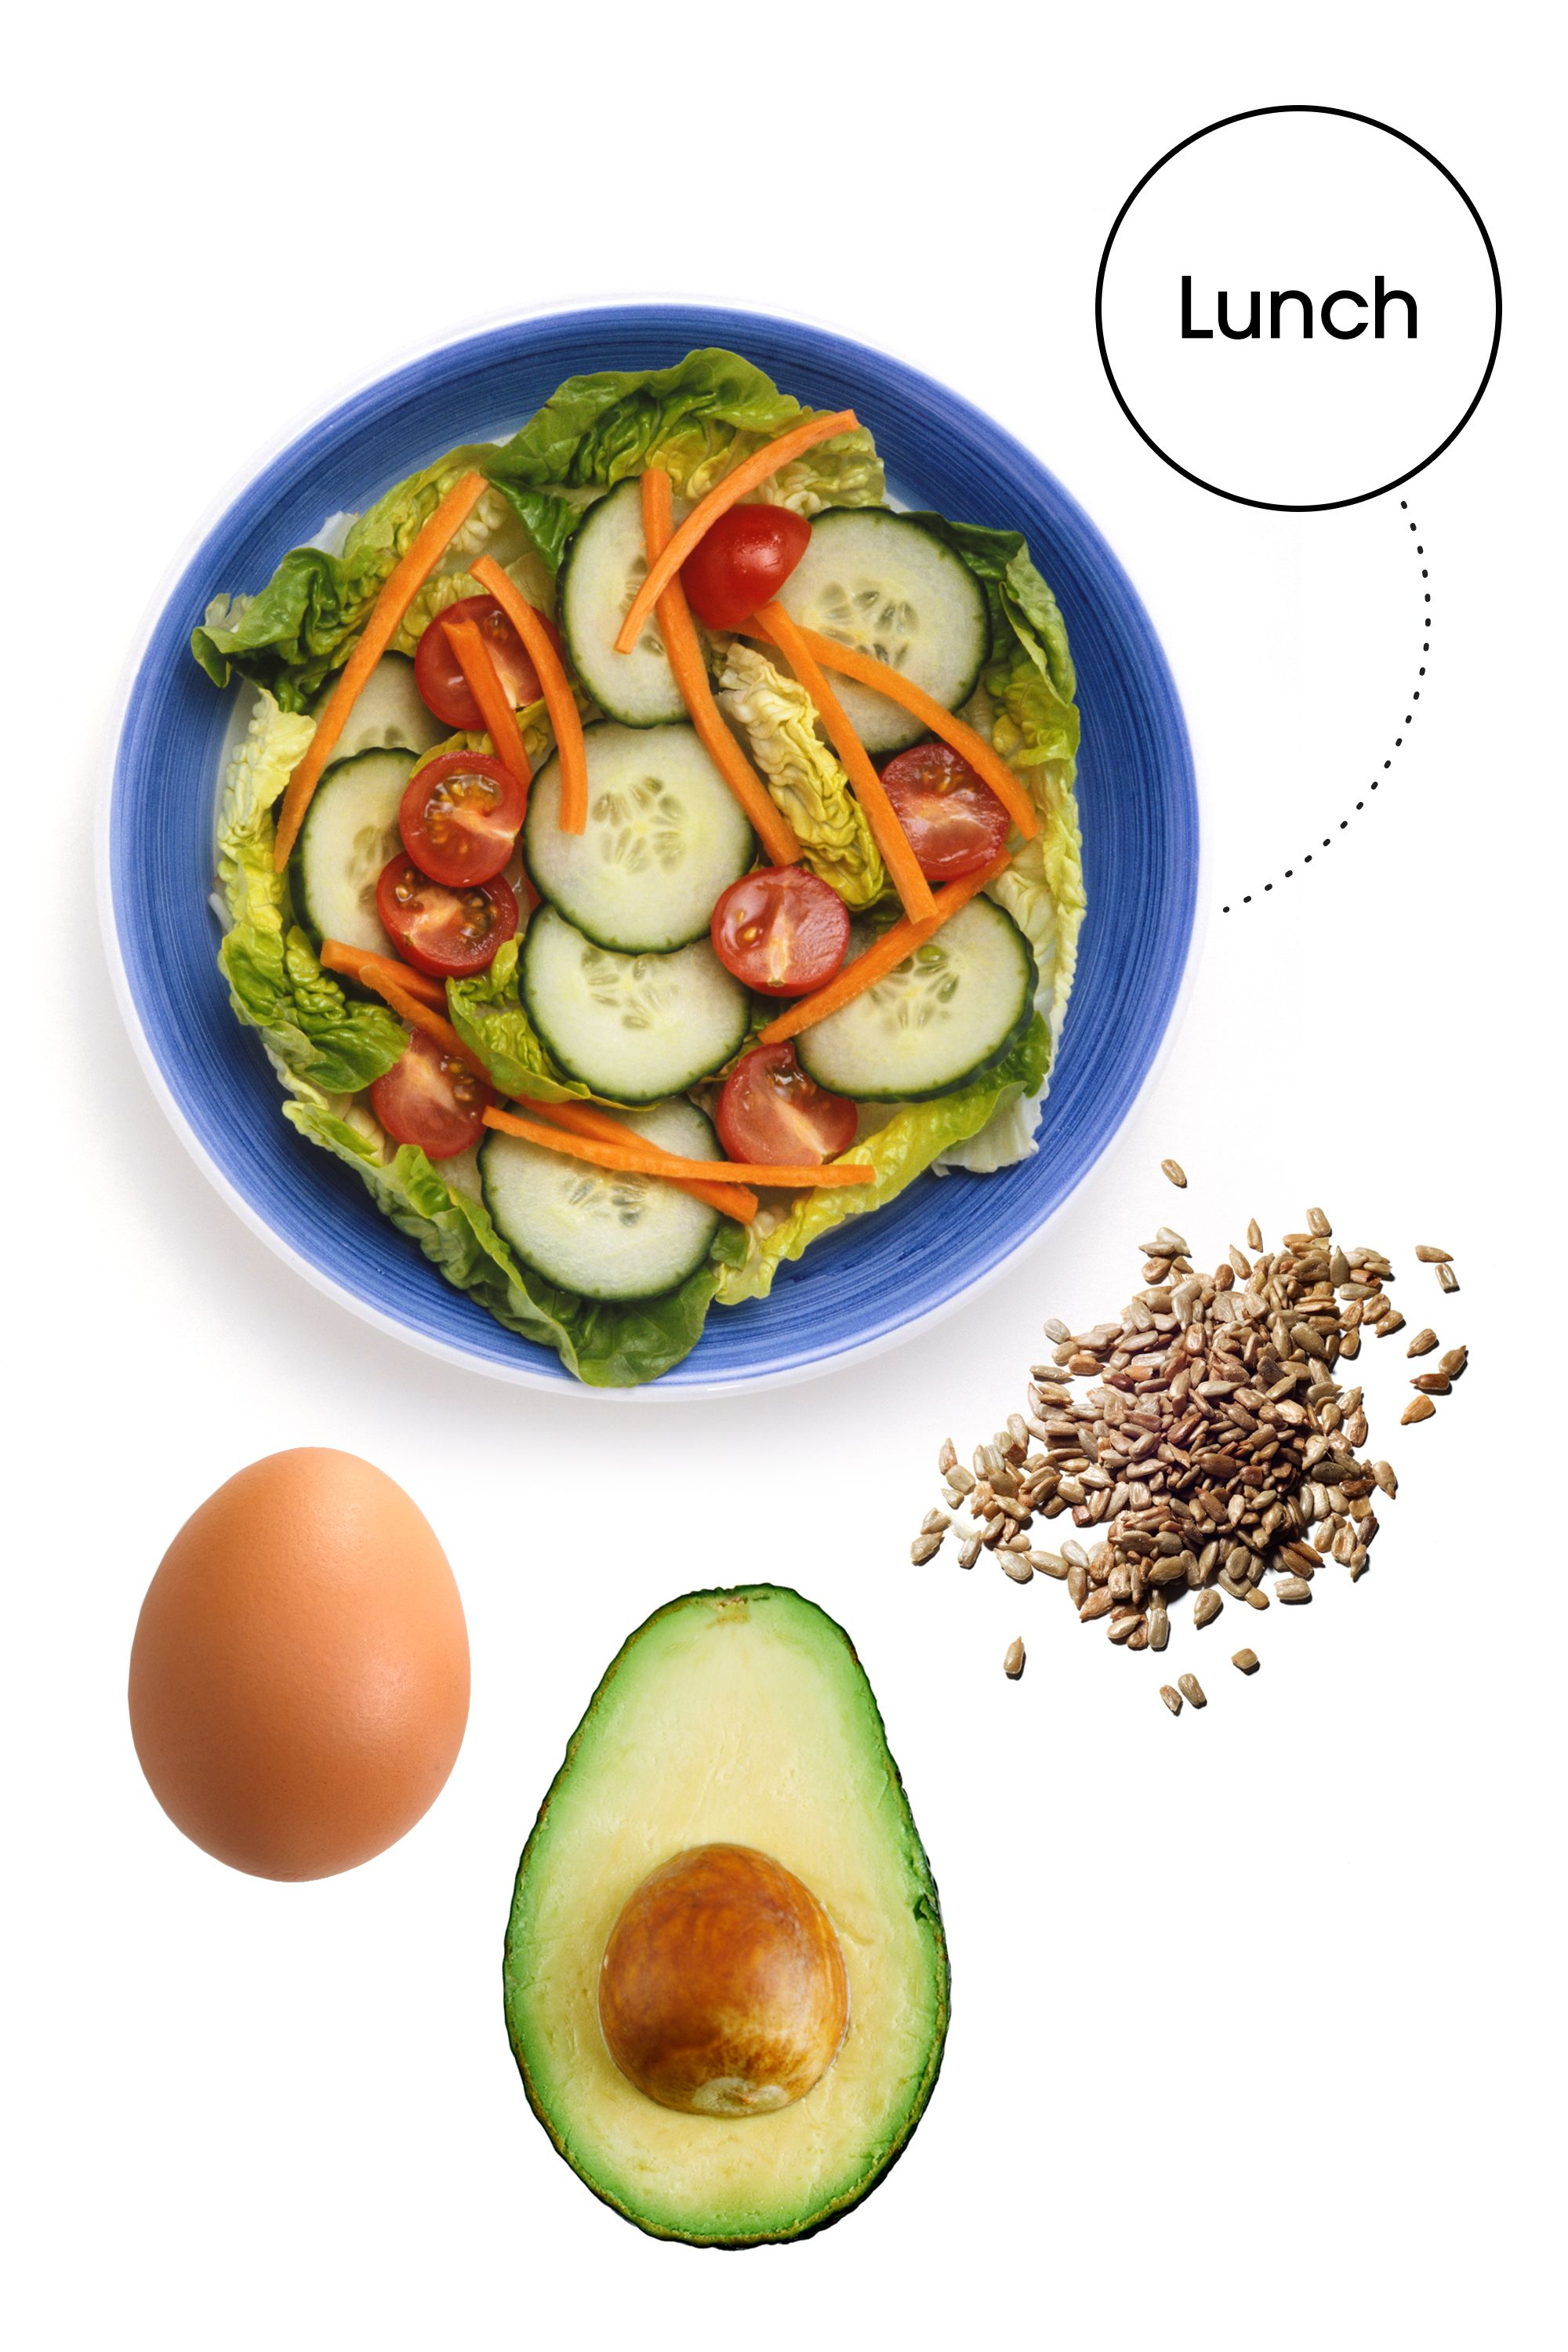 <em>2 cups salad greens with </em><em>1/2 a diced cucumber, </em><em>10 cherry tomatoes, </em><em>1/4 cup shredded carrots, </em><em>1/2 an avocado, </em><em>1 hard boiled egg, </em><em>1 tbsp sunflower seeds, and a s</em><em>queeze of lemon and vinegar</em>